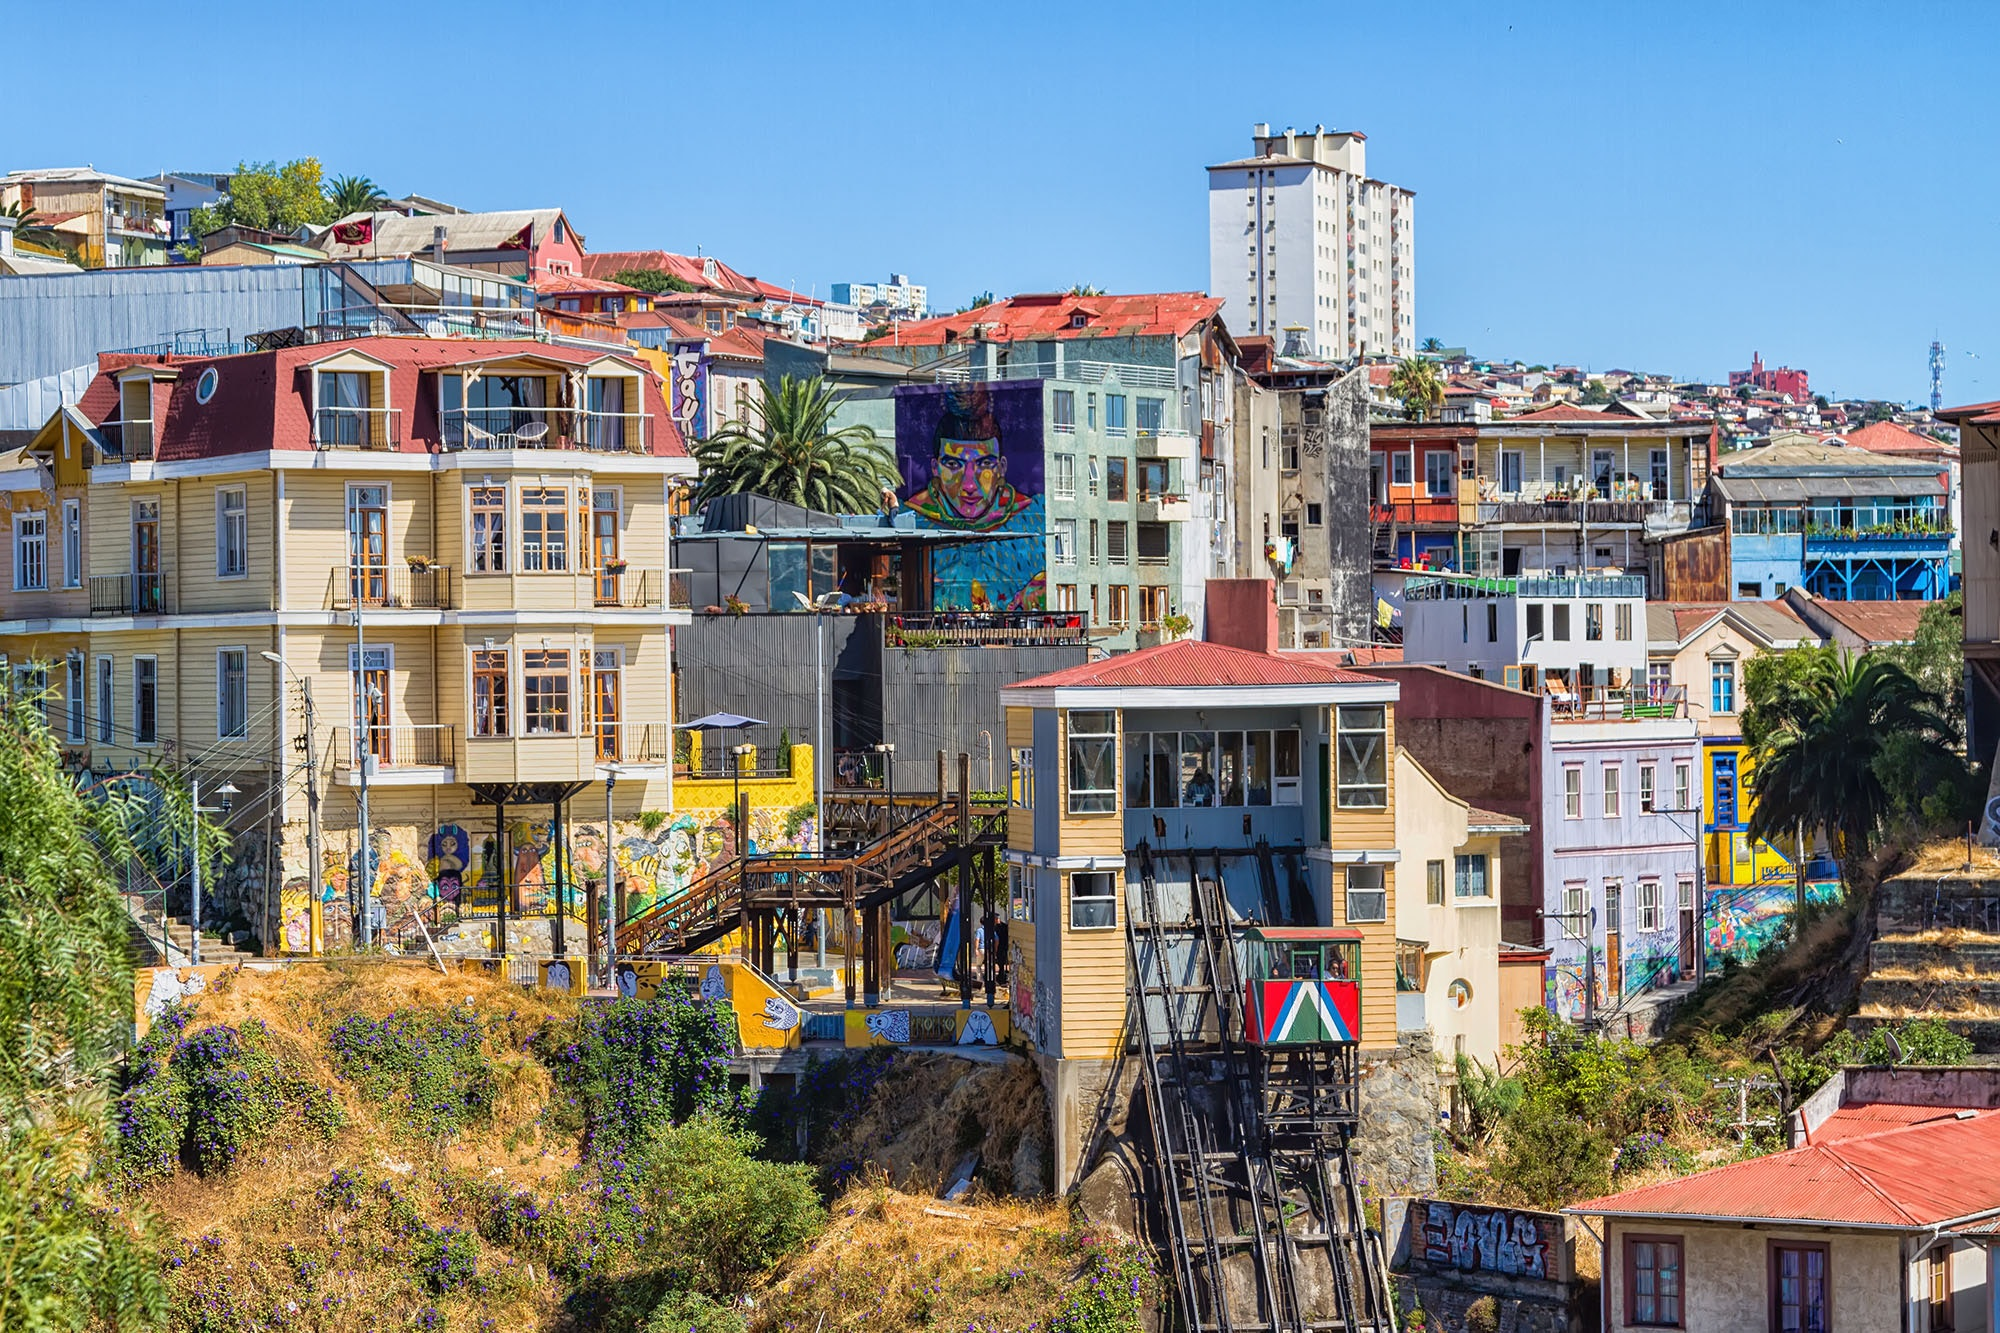 Valparaíso is the only city in Chile where street art is not only legal but also embraced.